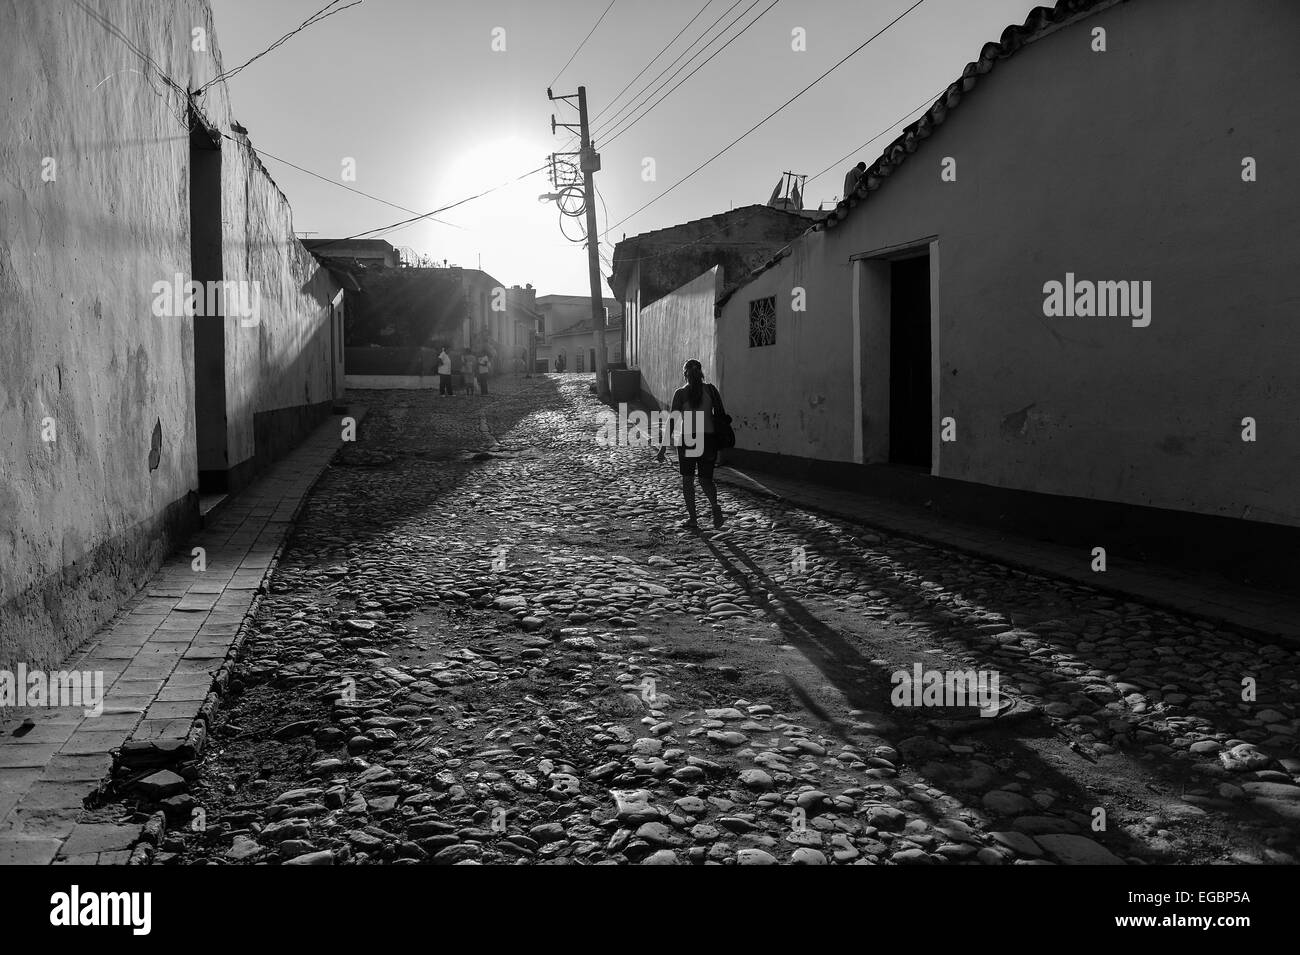 A shadowy figure walking up a cobbled street in Trinidad, Cuba. - Stock Image